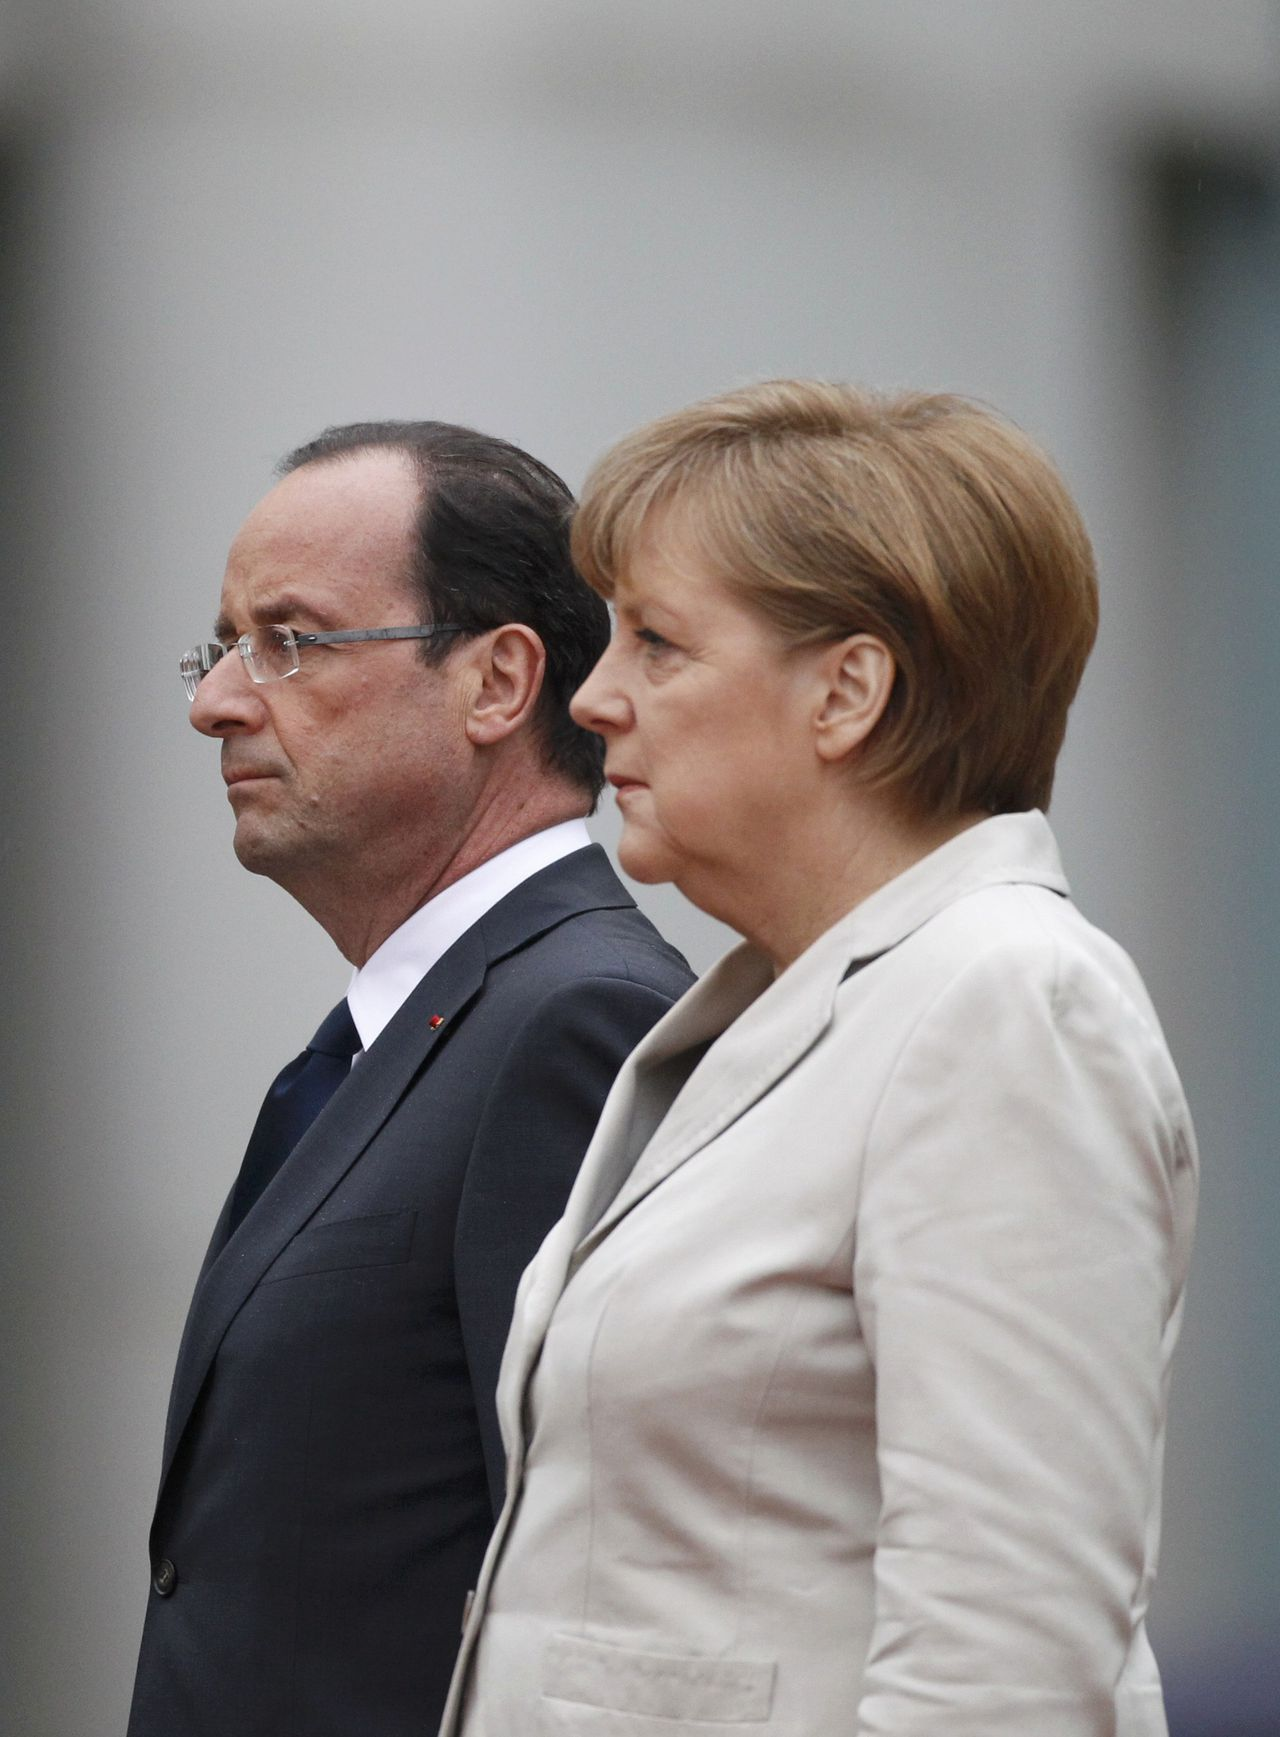 German Chancellor Angela Merkel and French President Francois Hollande listen to national anthems during a ceremony at the Chancellery in Berlin, May 15, 2012. Hollande called for a European pact for growth to balance out German-driven austerity measures in his inaugural address on Tuesday, hours before taking his challenge to Chancellor Angela Merkel in Berlin. Sworn in with all the pomp of the French Republic, Hollande won support from Germany's opposition Social Democrats (SPD), who vowed to use their parliamentary blocking power to delay ratifying a European budget discipline treaty until Merkel accepts accompanying measures to boost growth and jobs. REUTERS/Thomas Peter (GERMANY - Tags: POLITICS TPX IMAGES OF THE DAY)